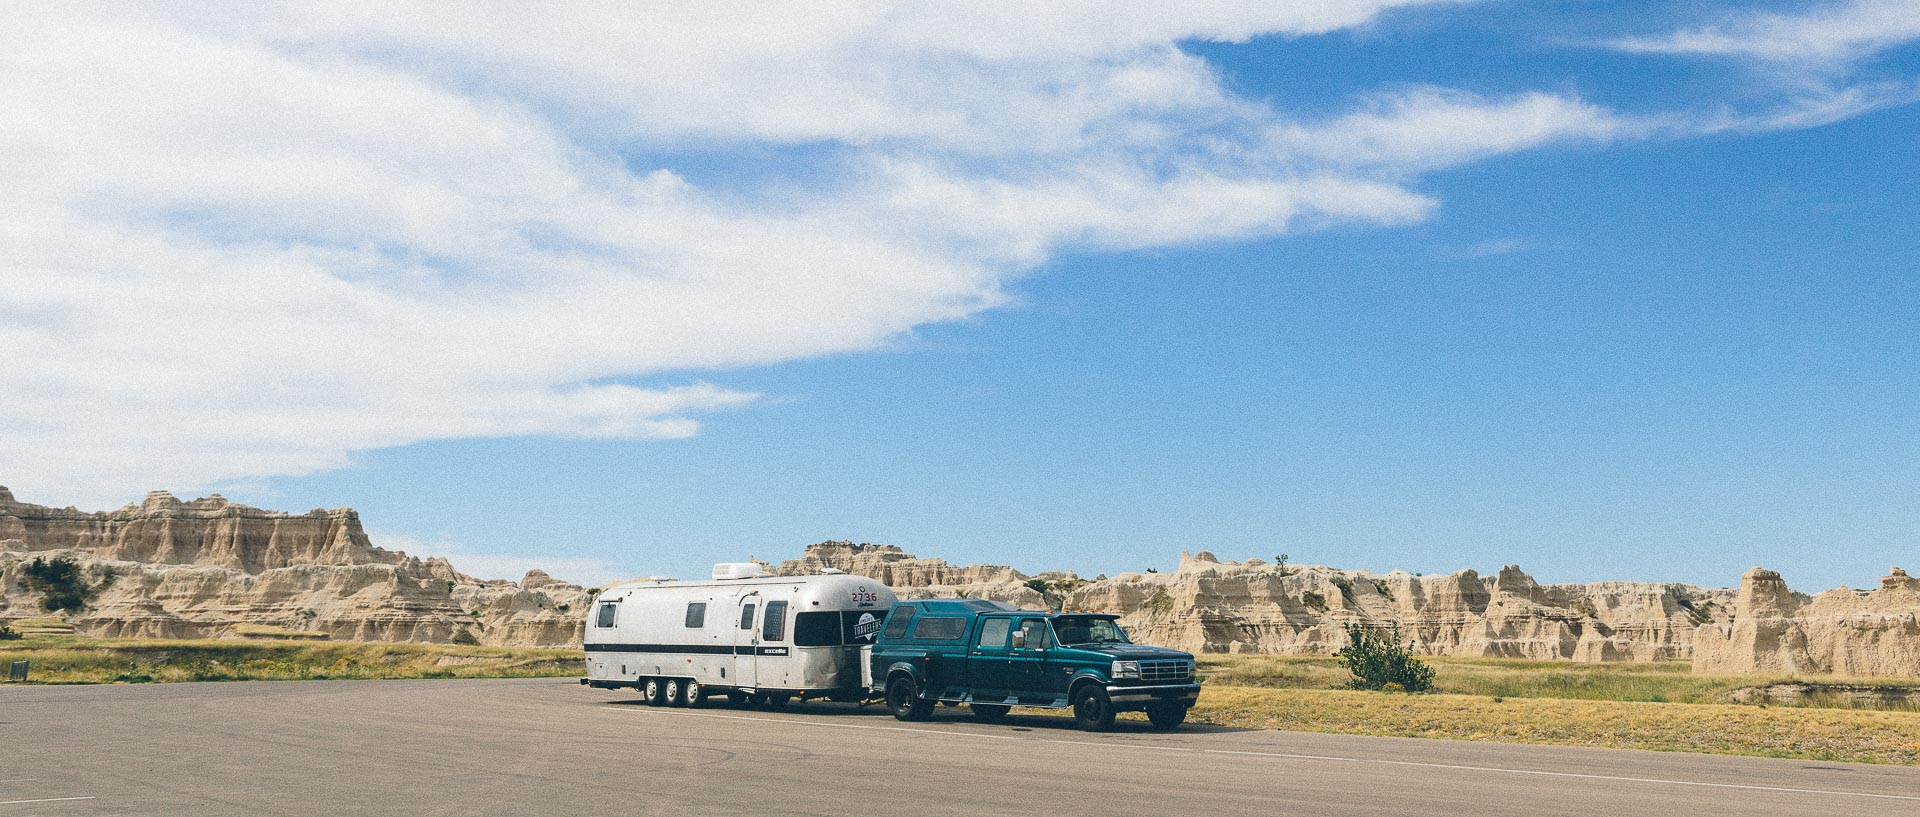 Badlands sd airstream